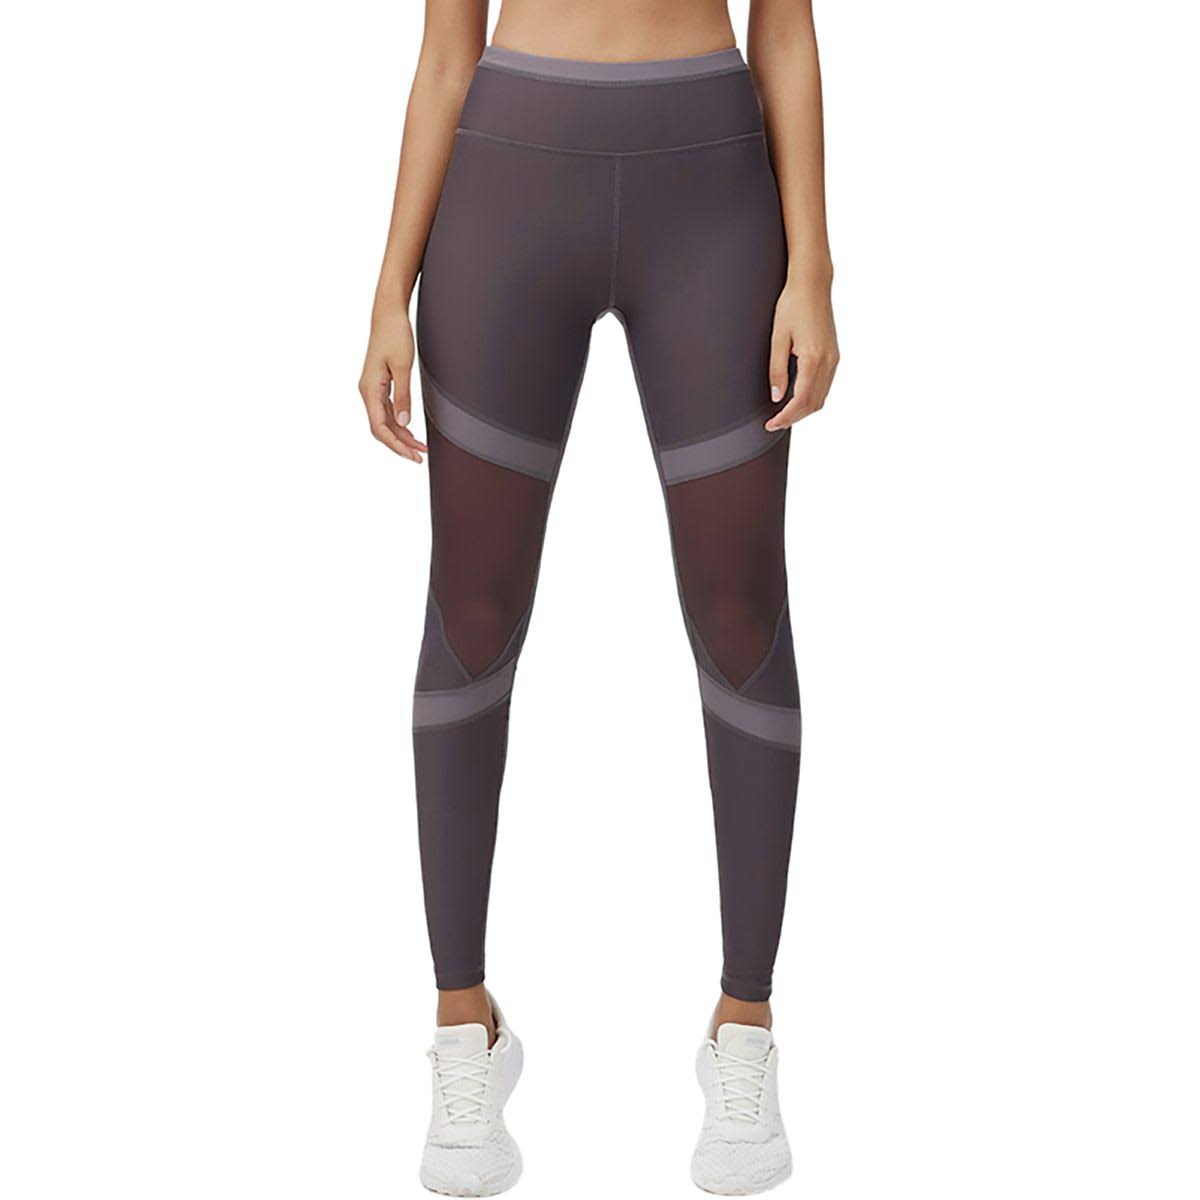 All Fenix Women's Laurel Bliss Full Length Tight - Size: XS